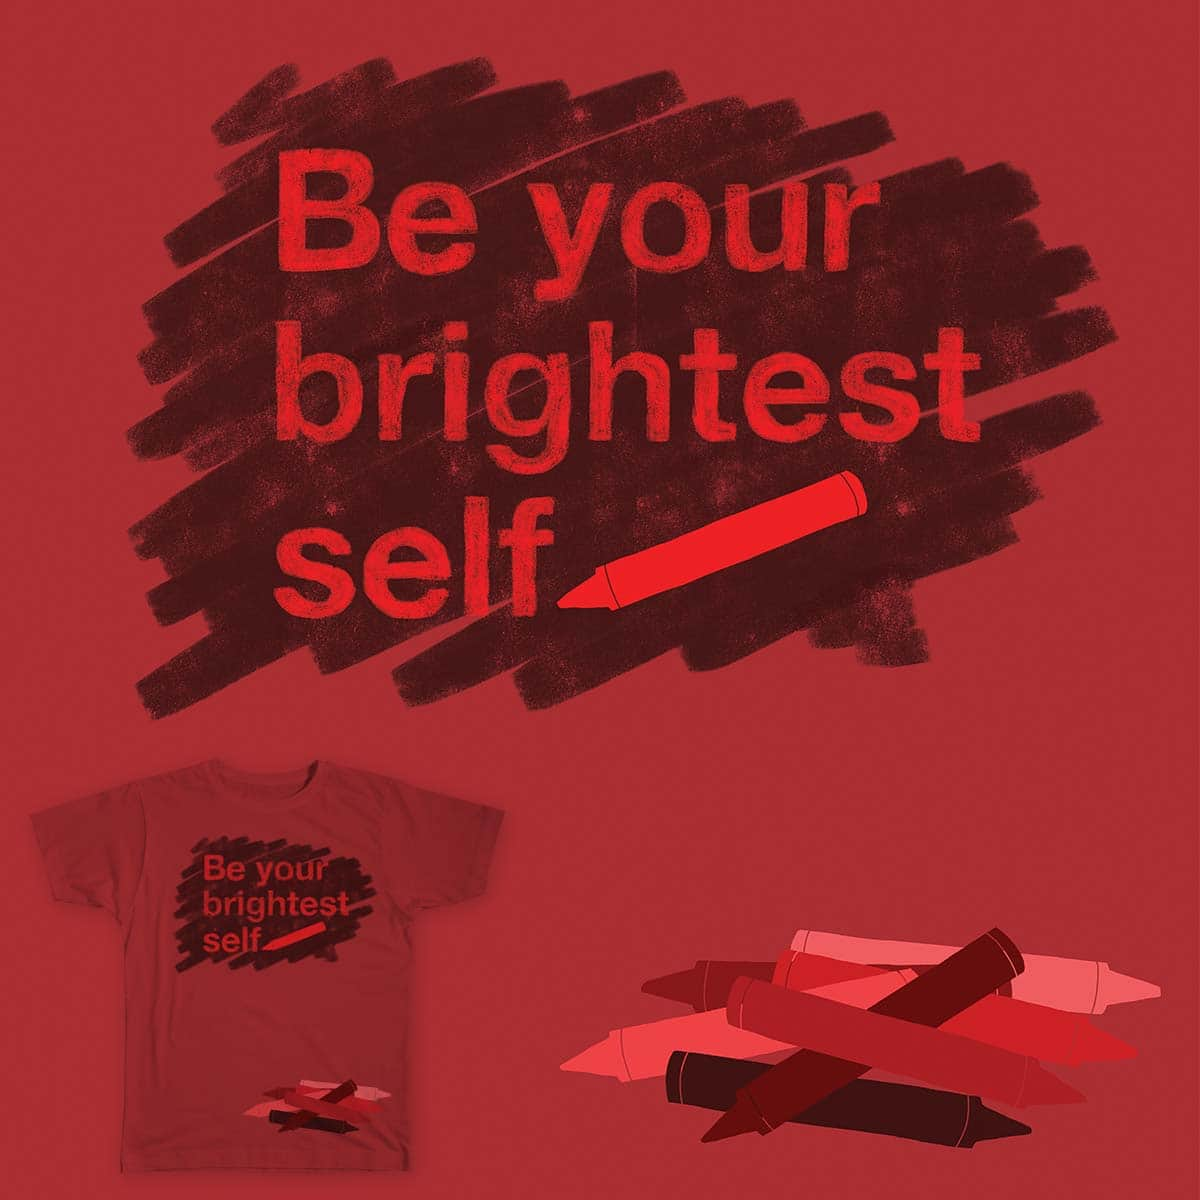 Be Your Brightest Self by malibu4 on Threadless